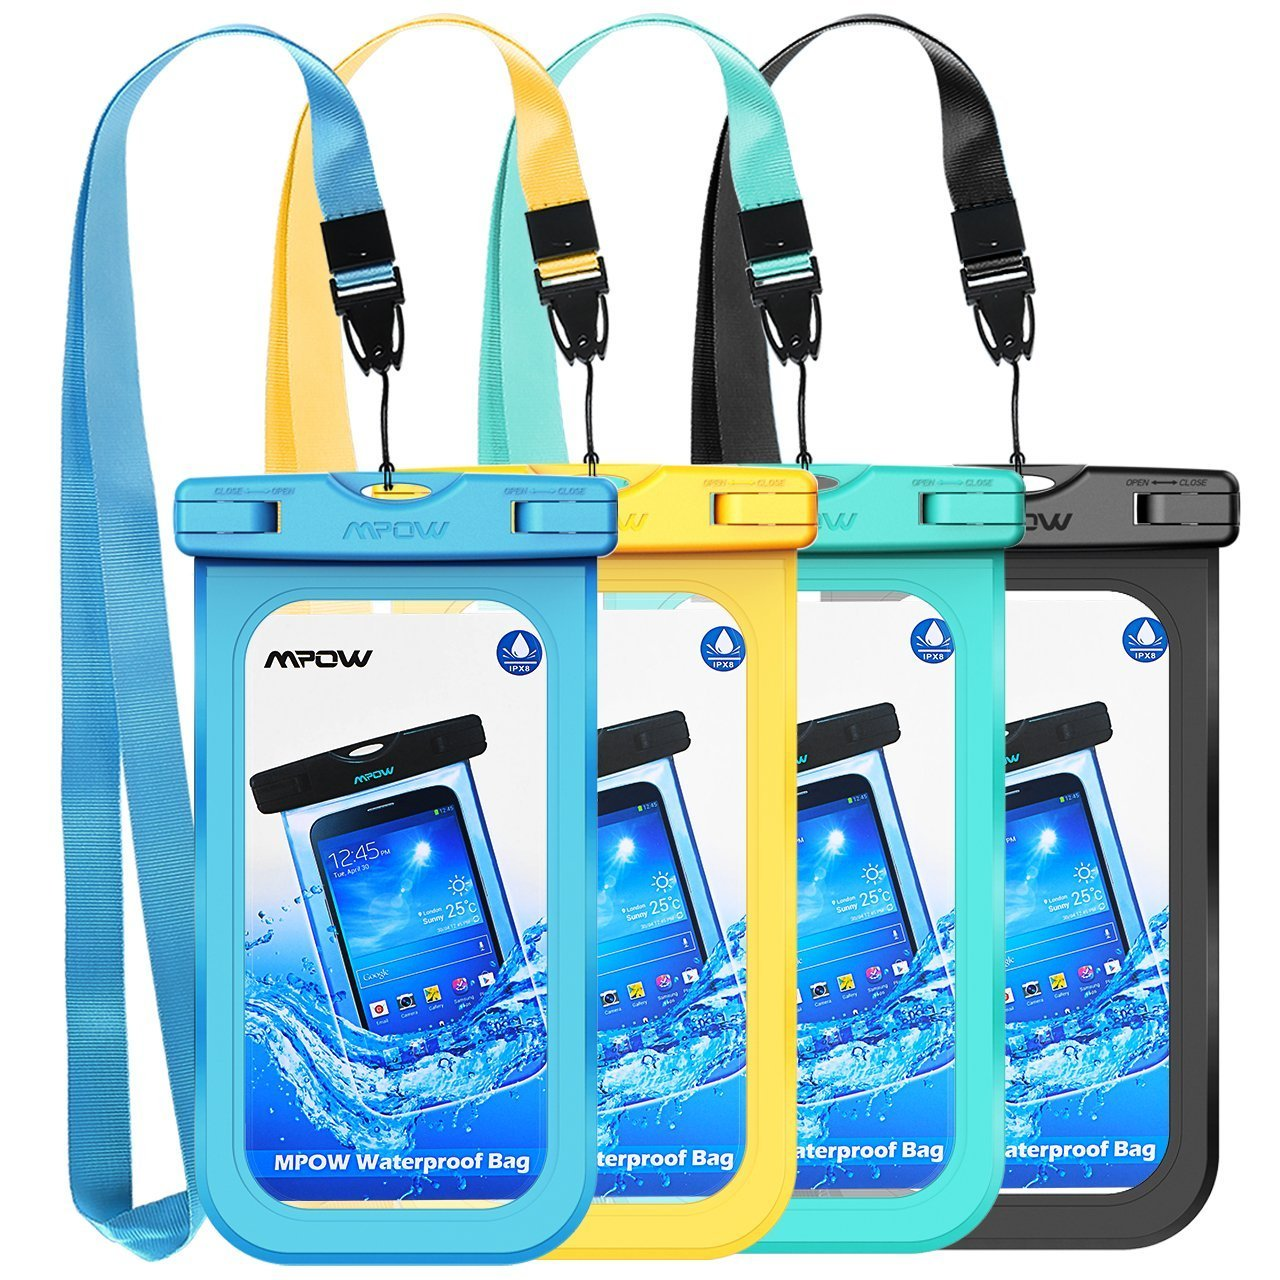 The Mpow Waterprooof Phone Pouch travel product recommended by Ilana Schattauer on Lifney.